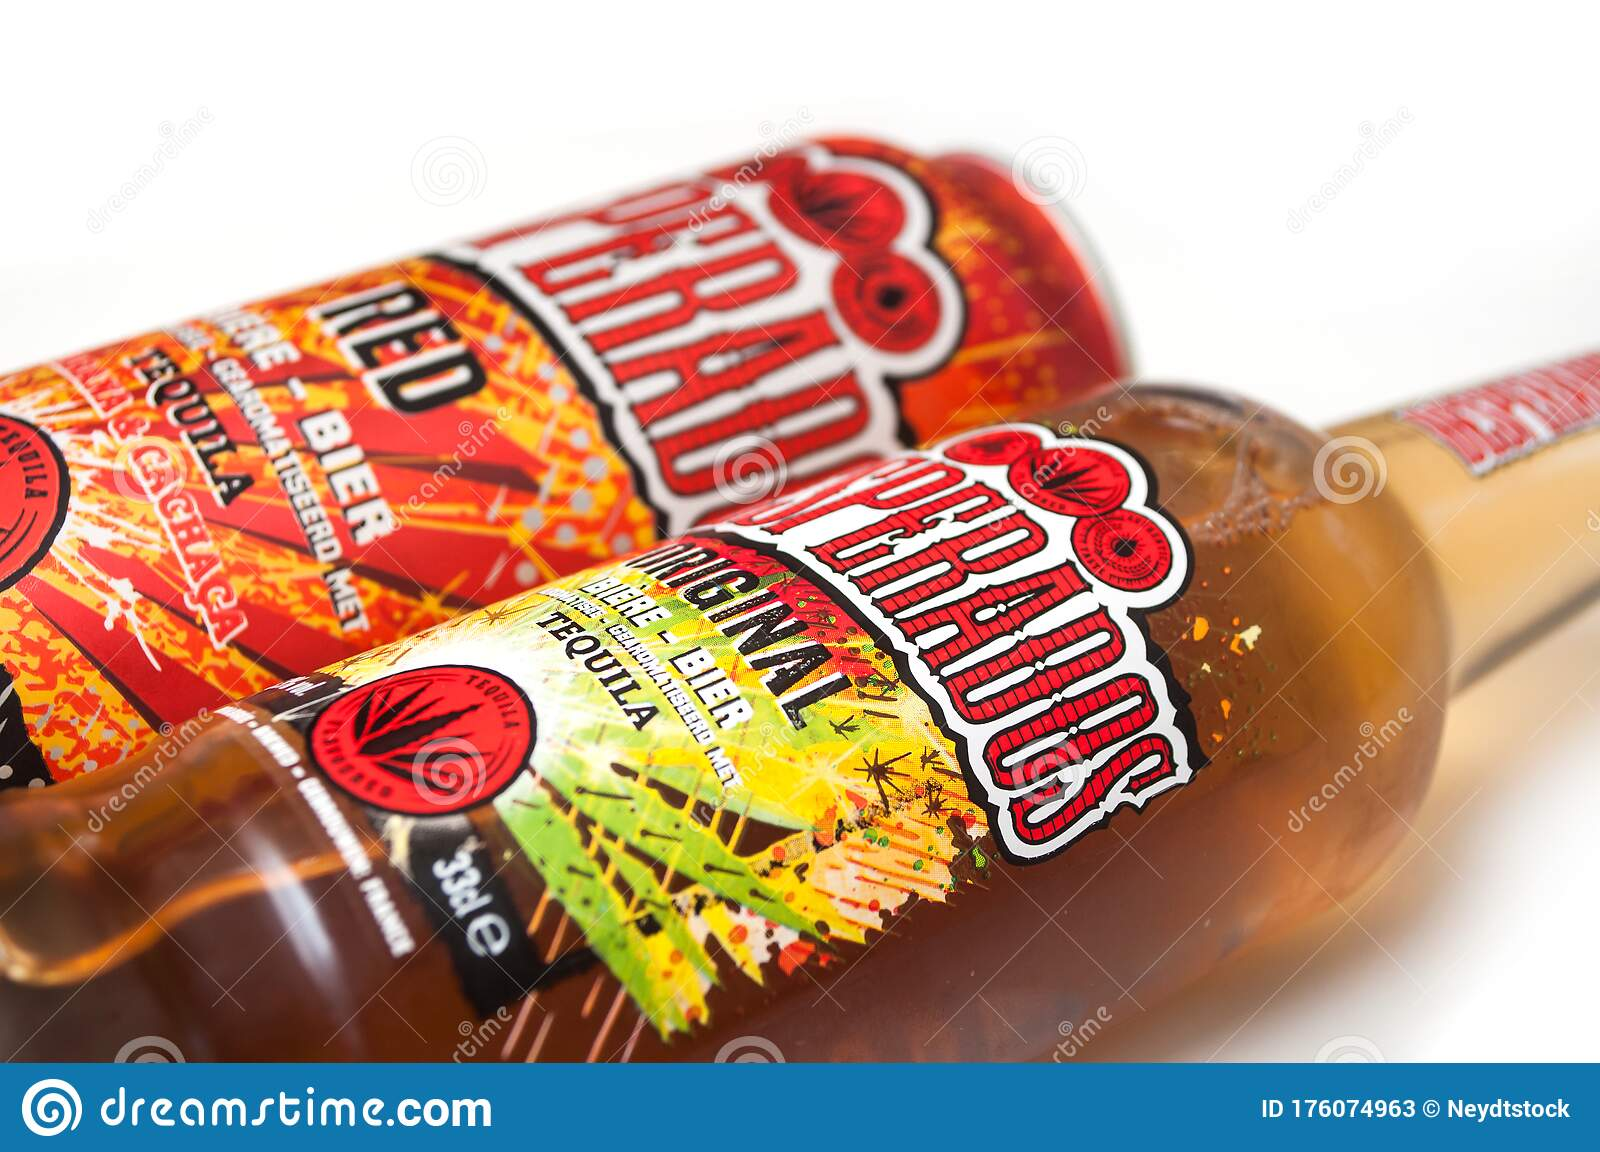 Desperados Beer Can On White Background Desperados Is The Famous Brand Of Mexican Beer With Tequila Editorial Stock Photo Image Of Famous Bottle 176074963